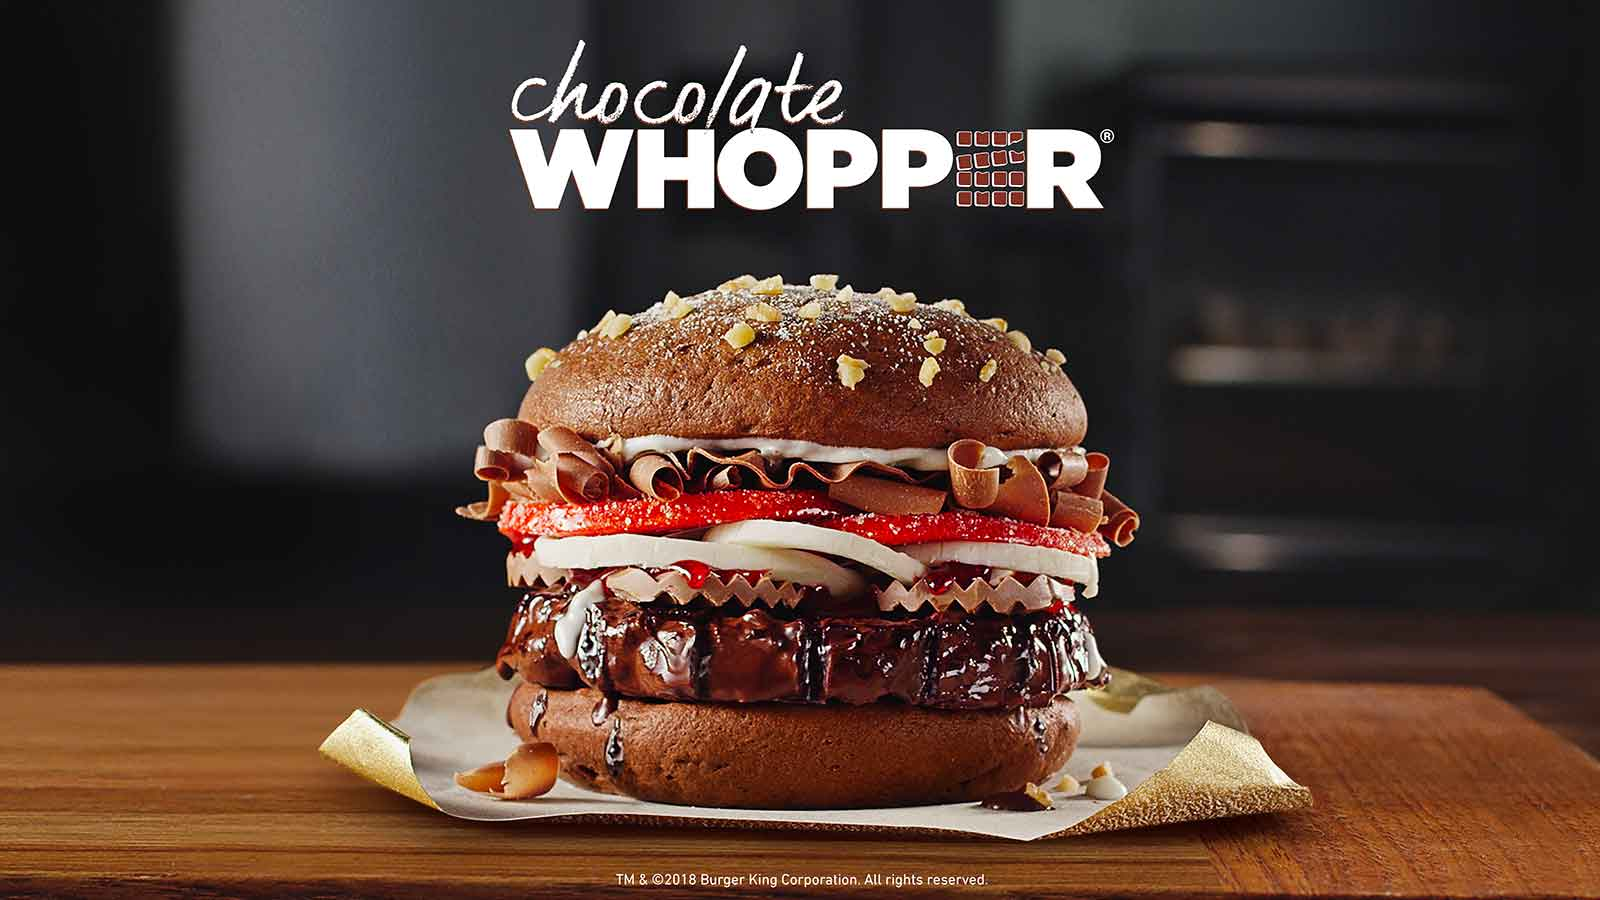 BURGER KING announces launch of Chocolate WHOPPER sandwich